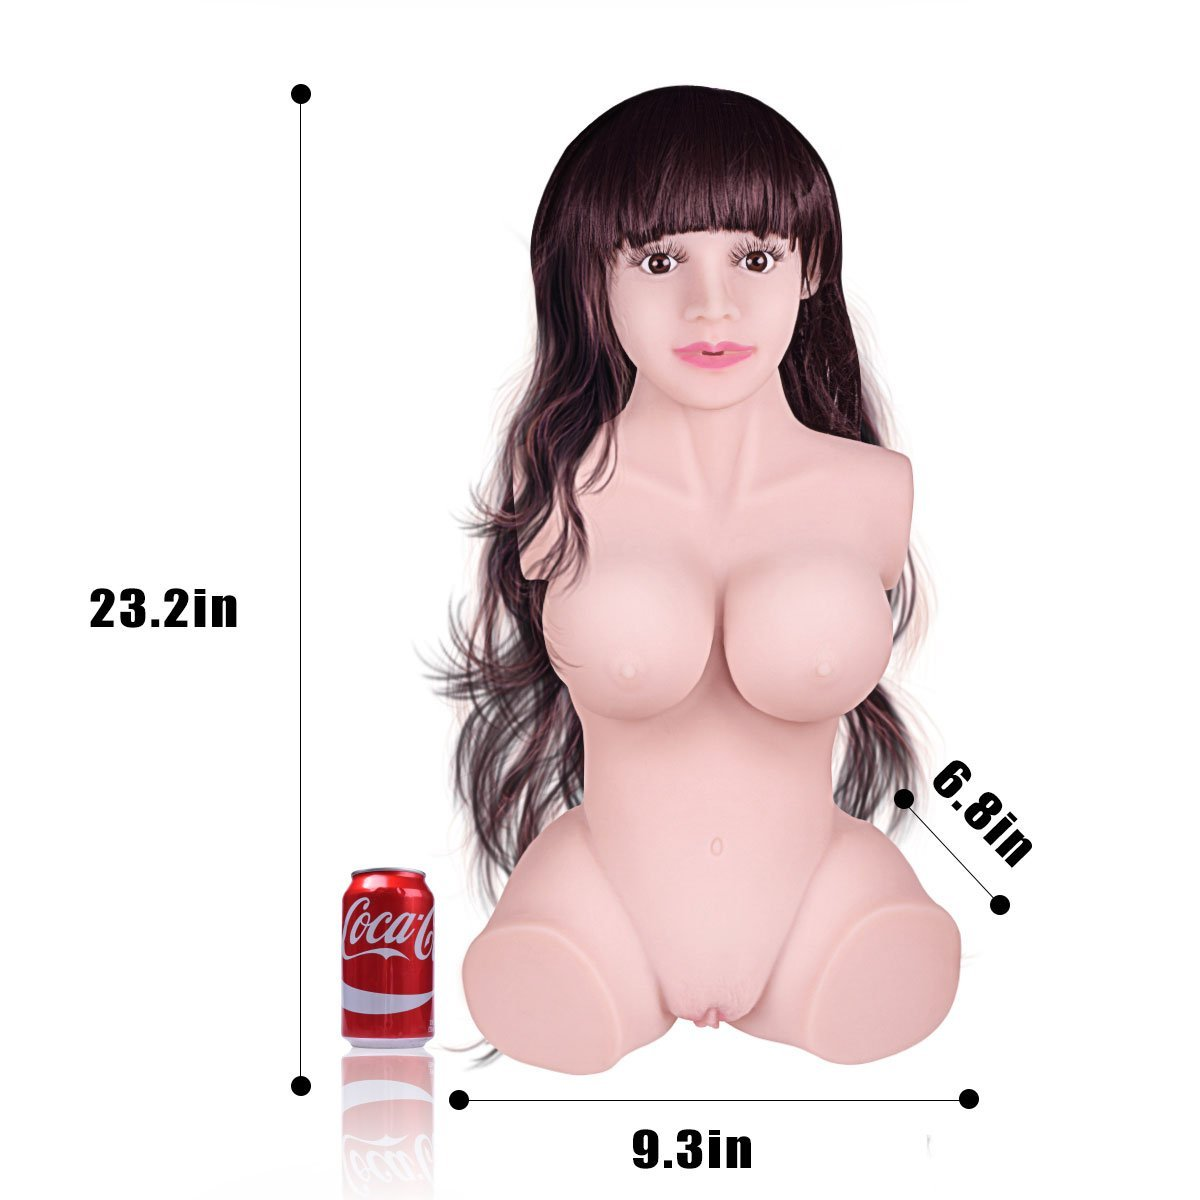 Full Size Women Trunk love doles with 3 Openings Lifelike Realistic Love Doles for Men Male 3D Adult Toys TPE Dolls with Metal Skeleton & Wig Lifesize Ultra Soft Men's Toys Best Gift for Boyfriend Hus by FlyDoll (Image #8)